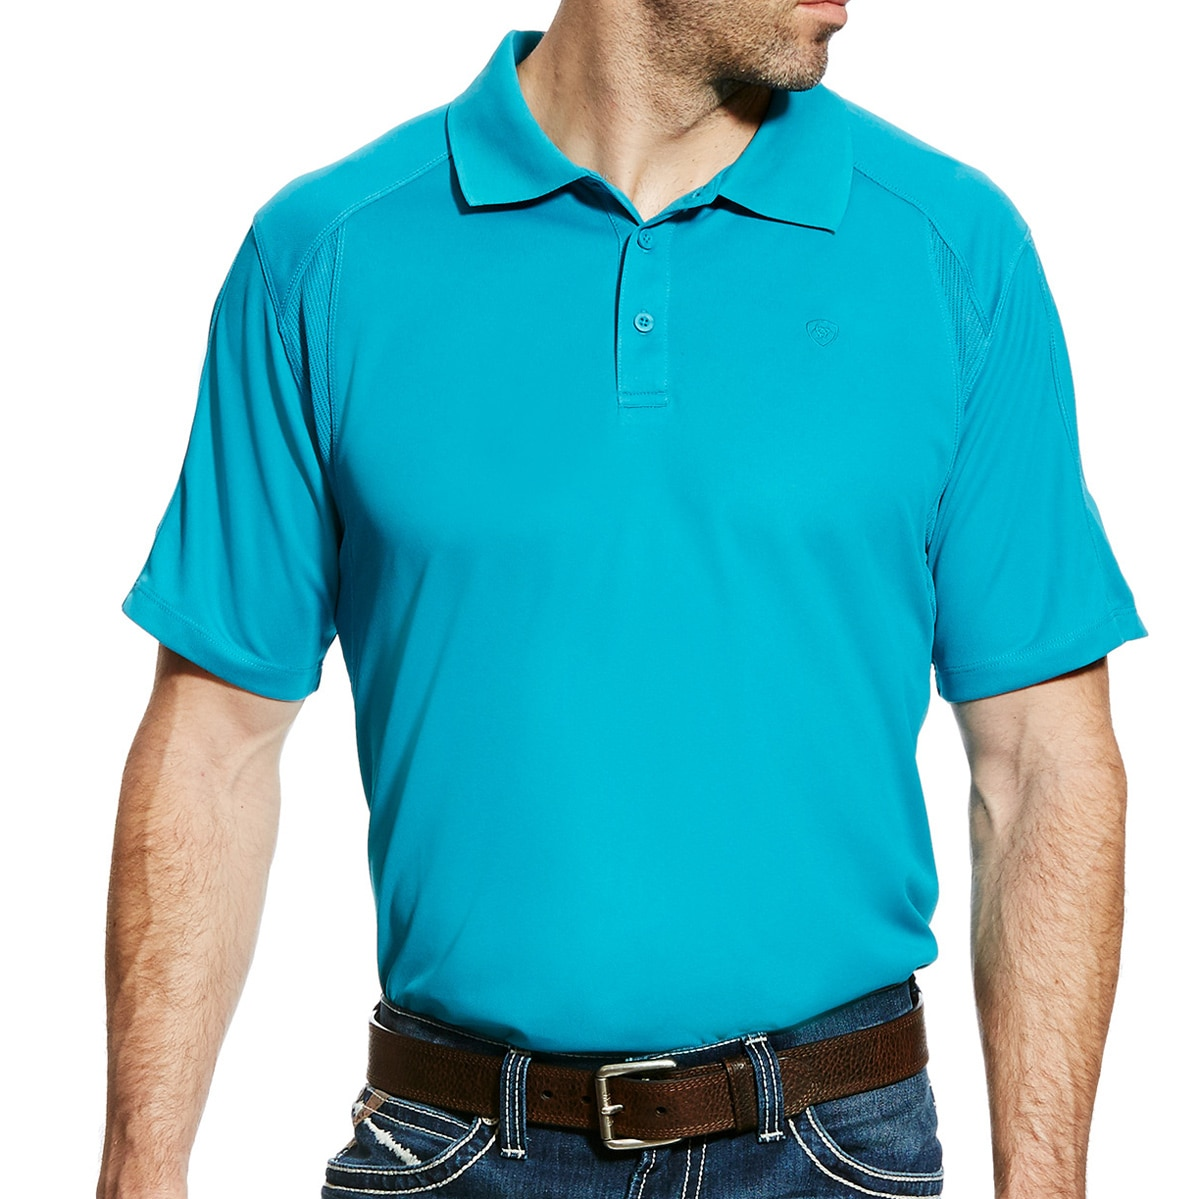 Ariat Men's AC Polo - Clearance!